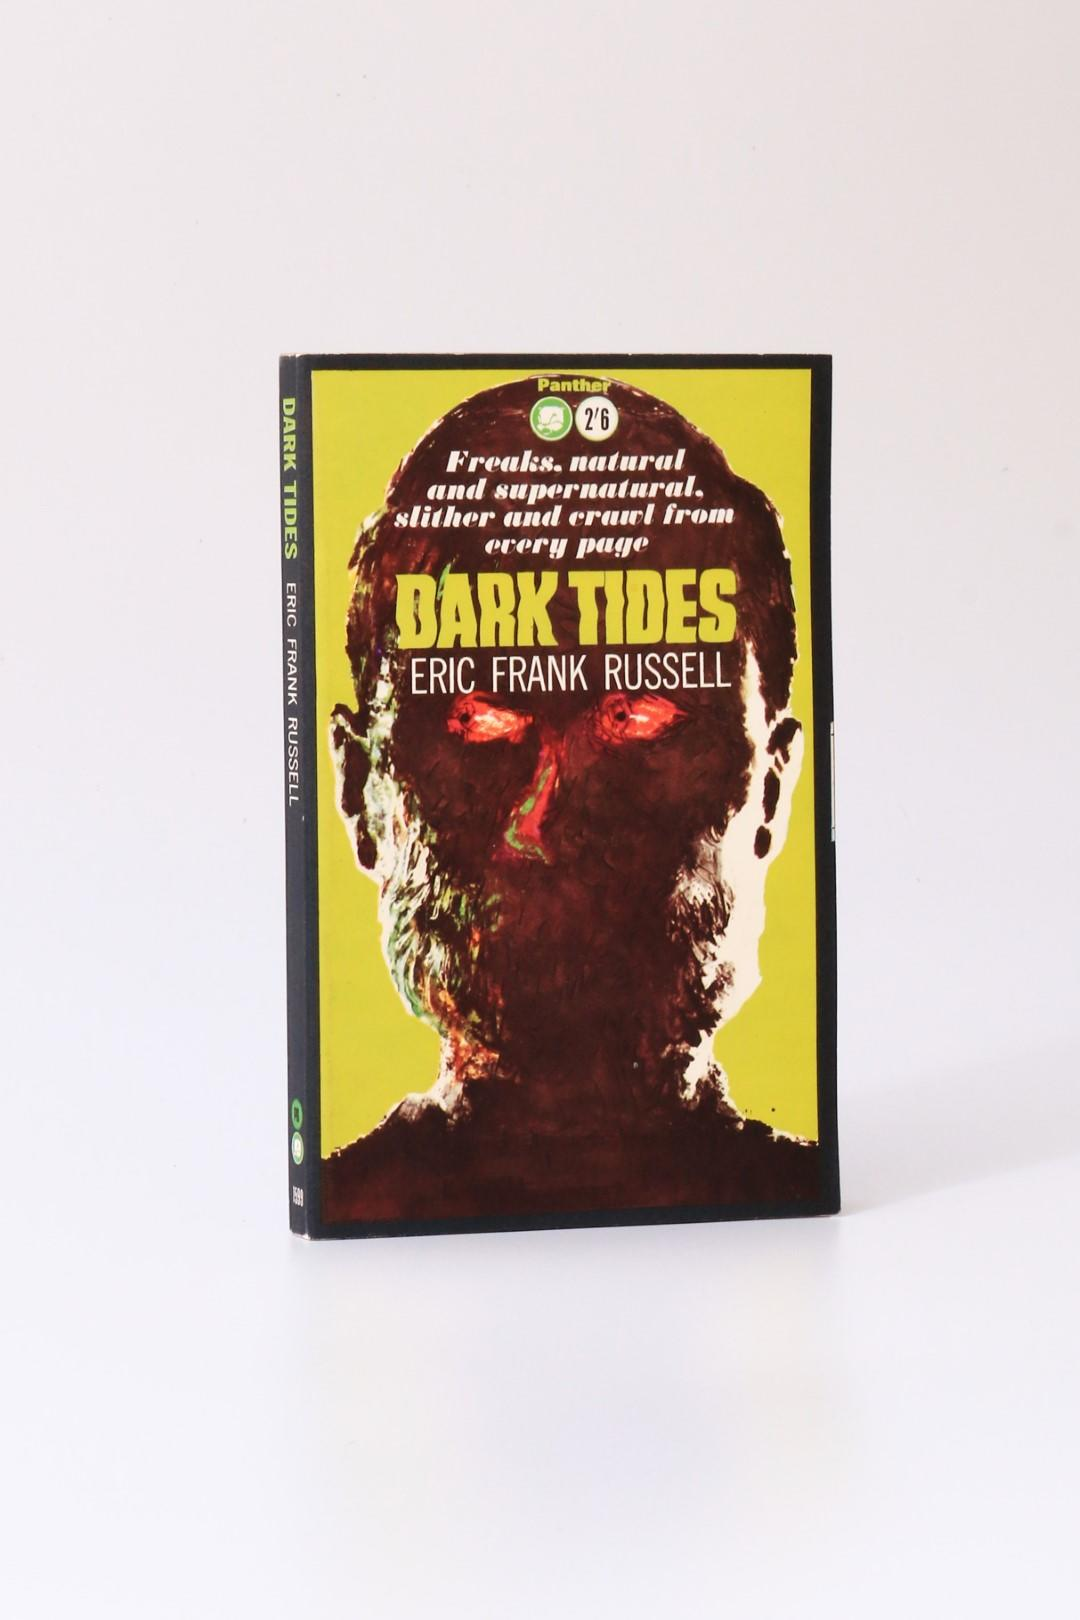 Eric Frank Russell - Dark Tides - Panther Books, 1963, First Thus.